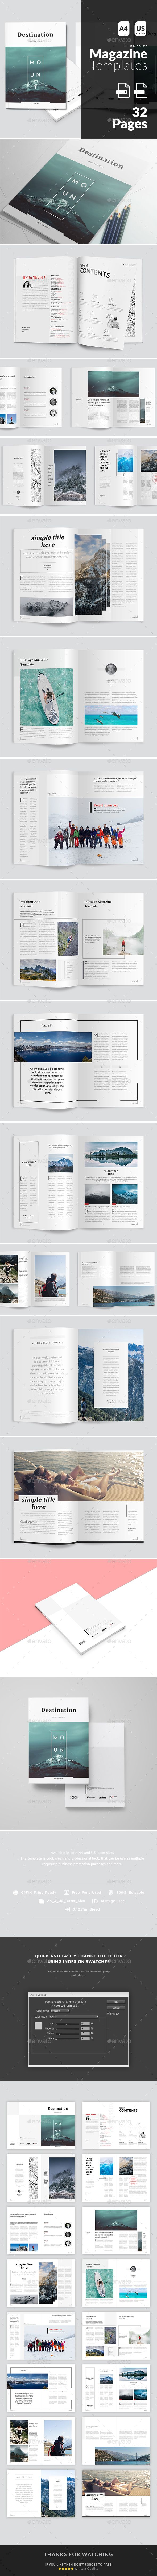 Magazine Template InDesign INDD - 32 Pages, A4 & US Letter Size